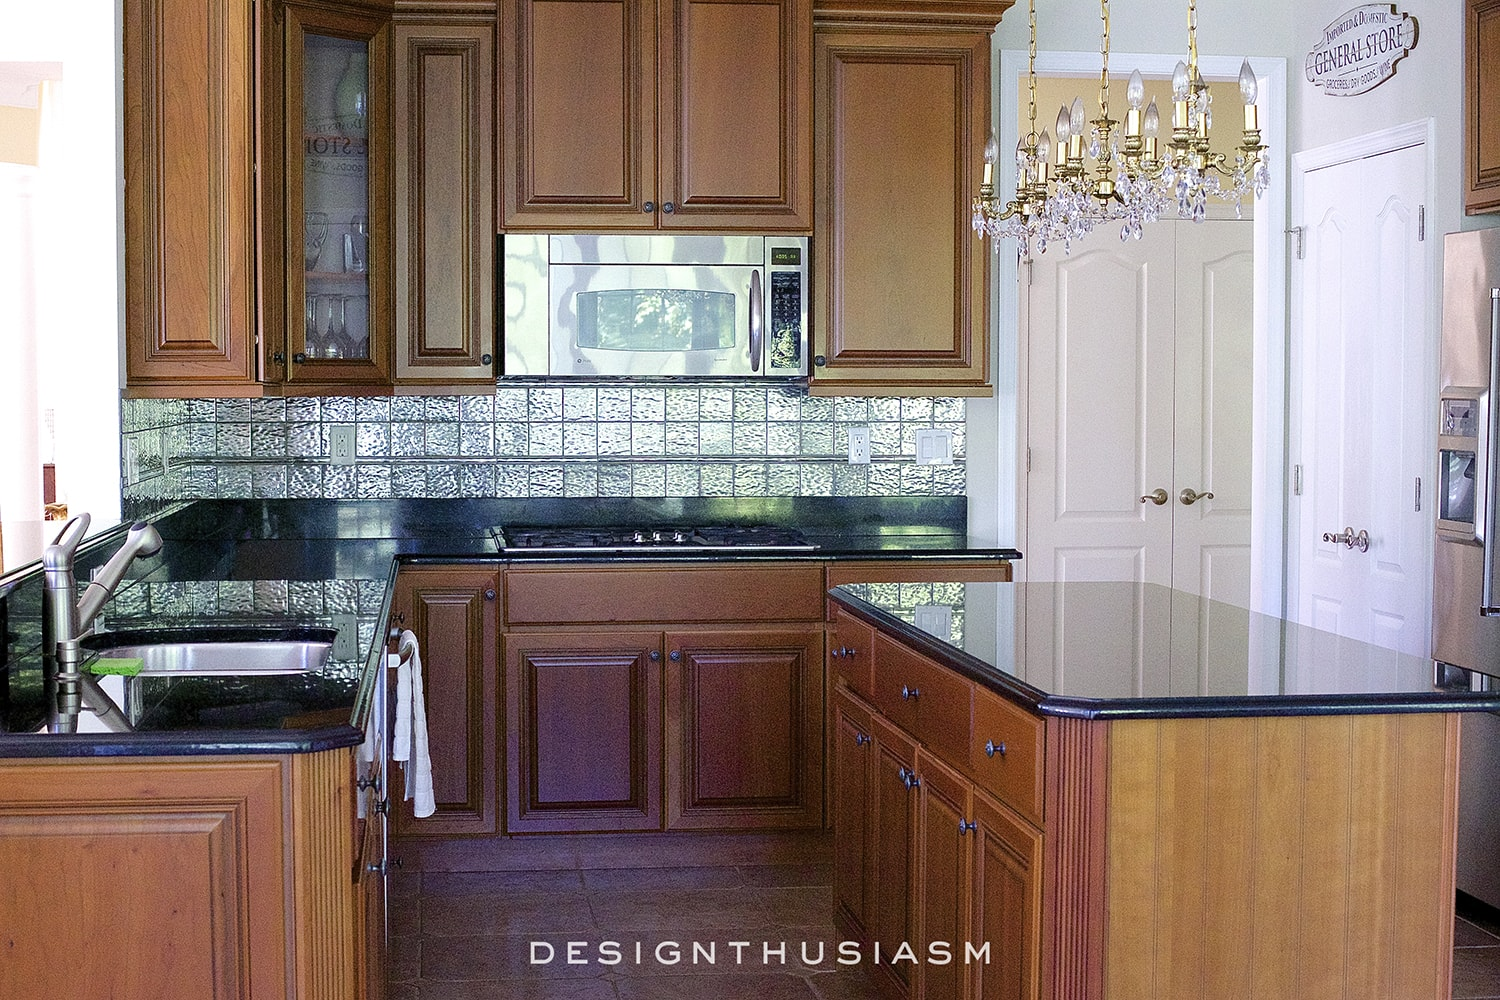 Kitchen Renovation Backsplash calcatta gold marble backsplash | orc kitchen renovation